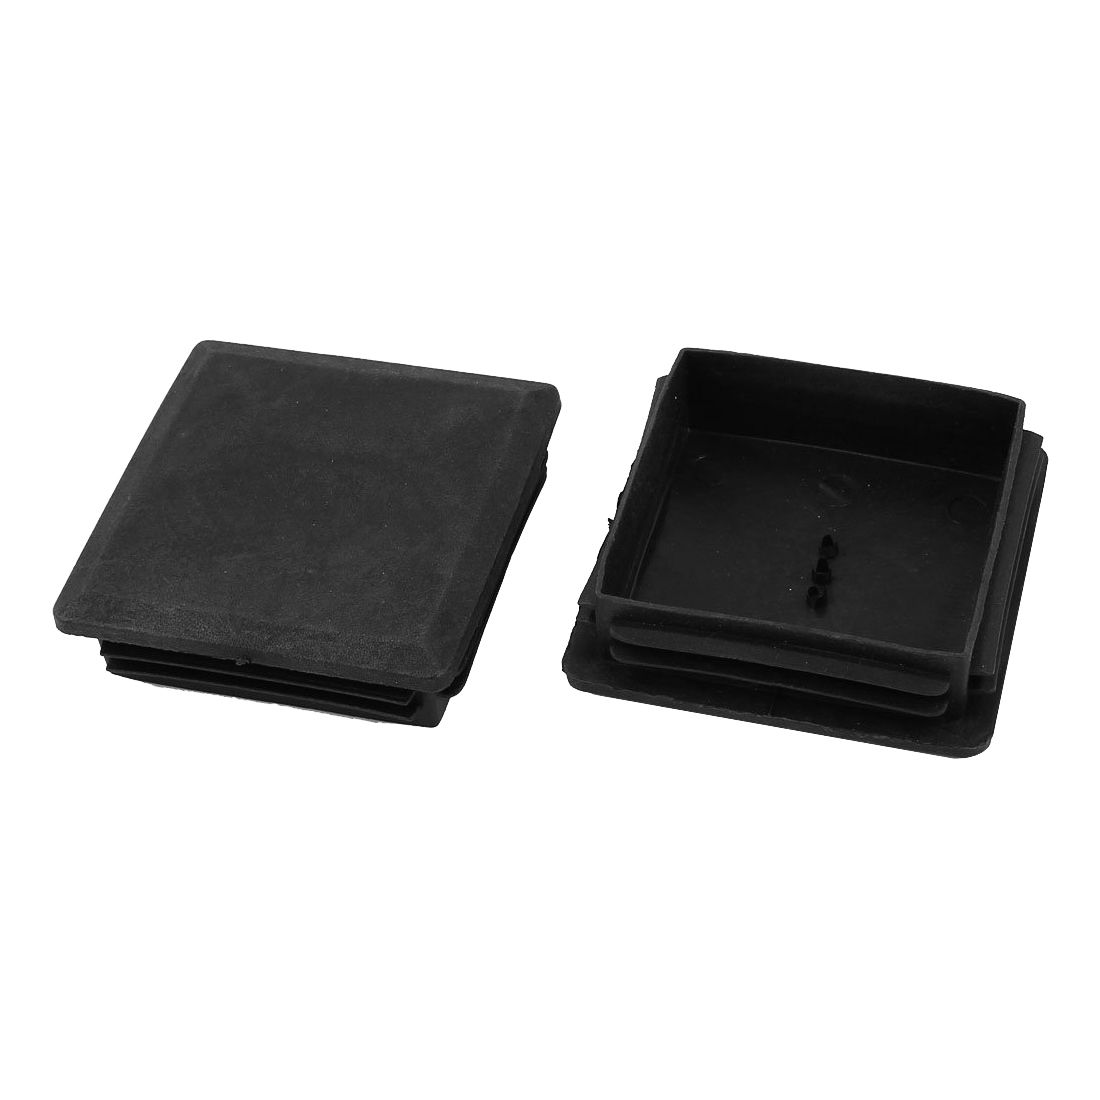 80mm X 80mm Square Plastic Caps Pipe Tube Inserts End Plug 2 Pieces